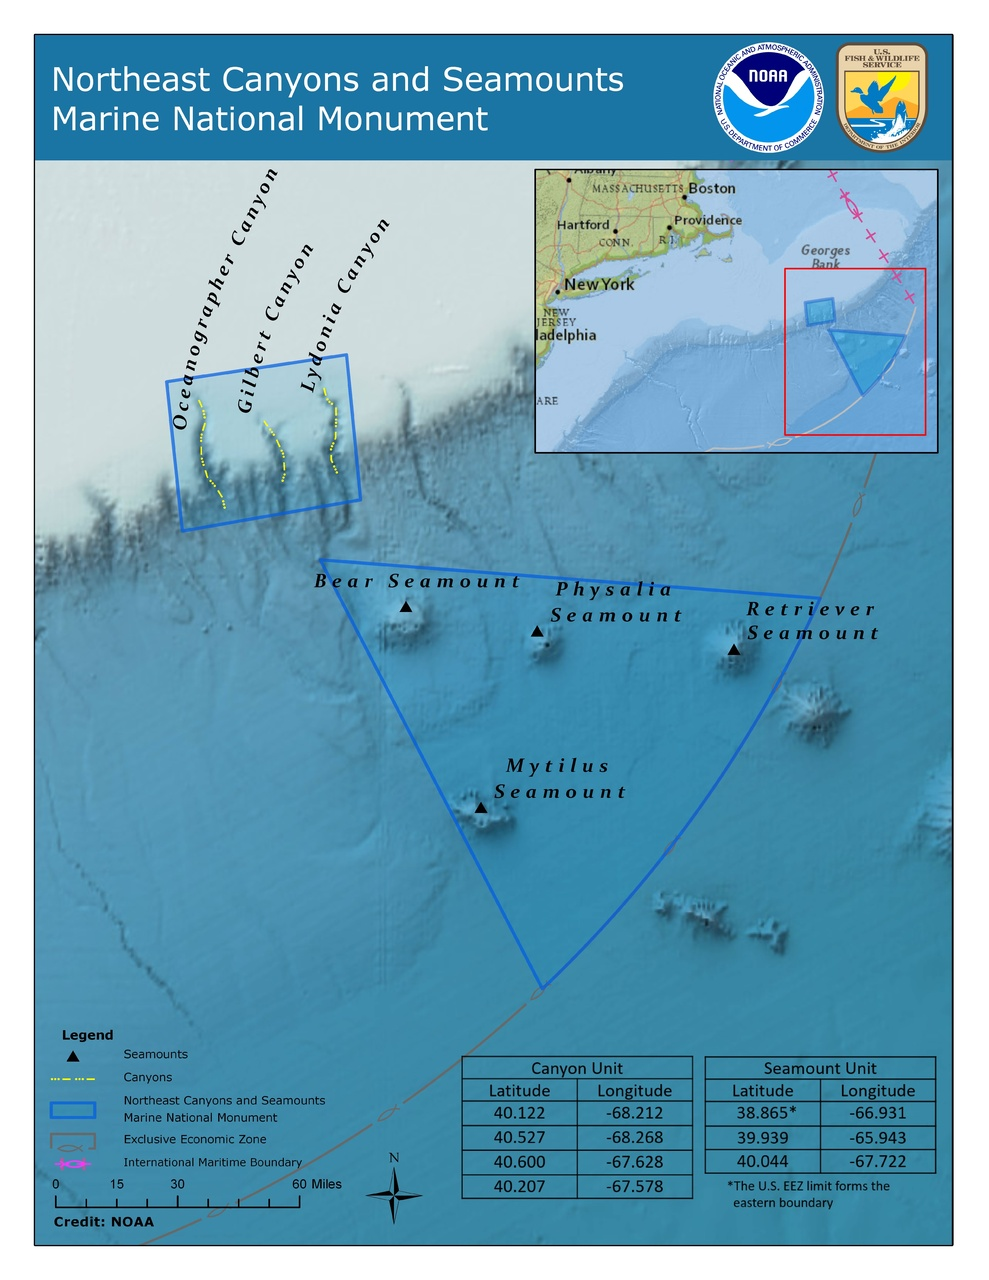 Northeast_Canyons_and_Seamounts_Marine_National_Monument_MAP.jpg